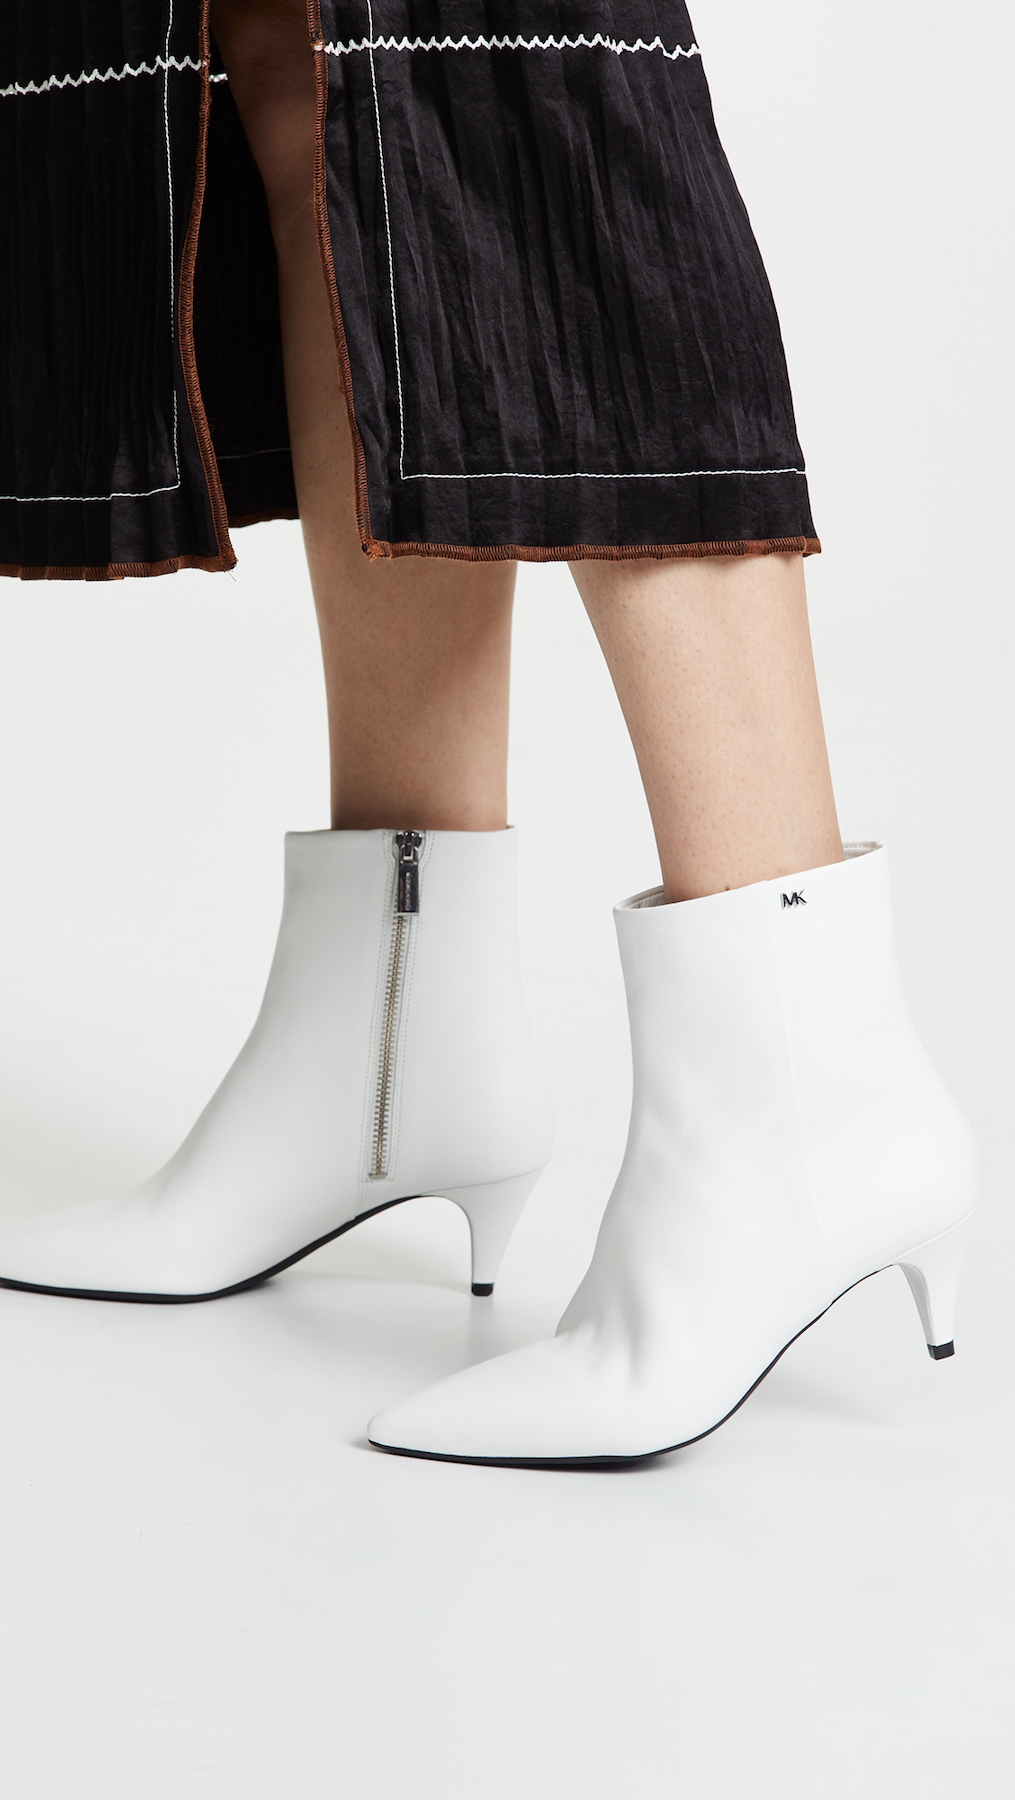 Cute Boots for Fall, White pointy-toe boots